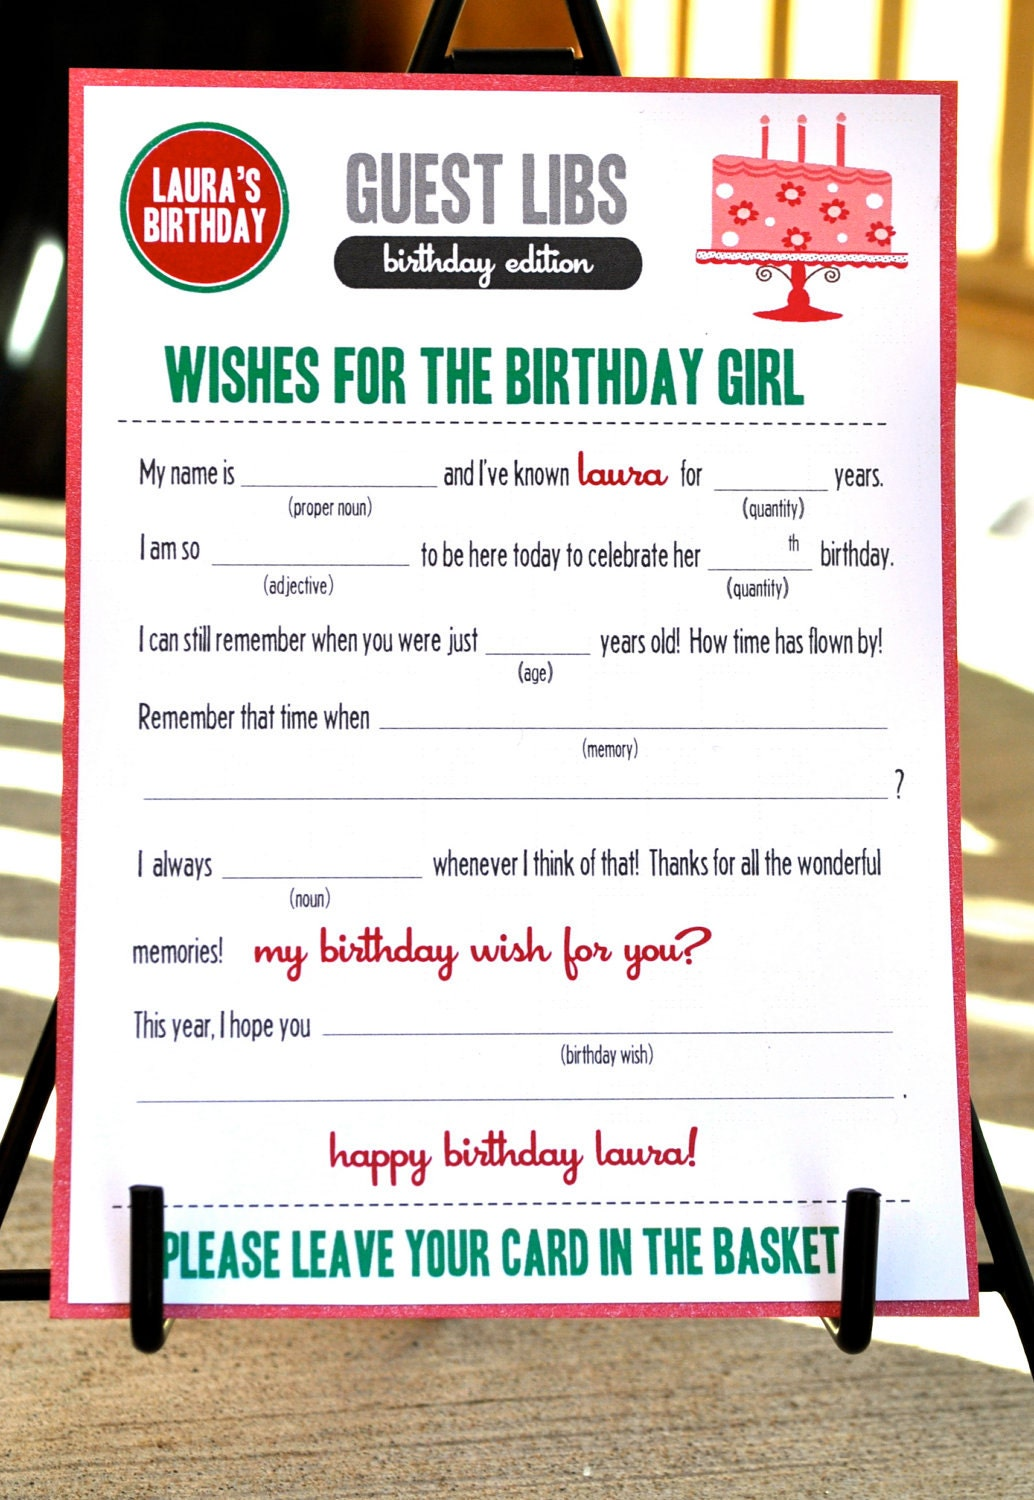 Tactueux image with regard to happy birthday mad libs printable